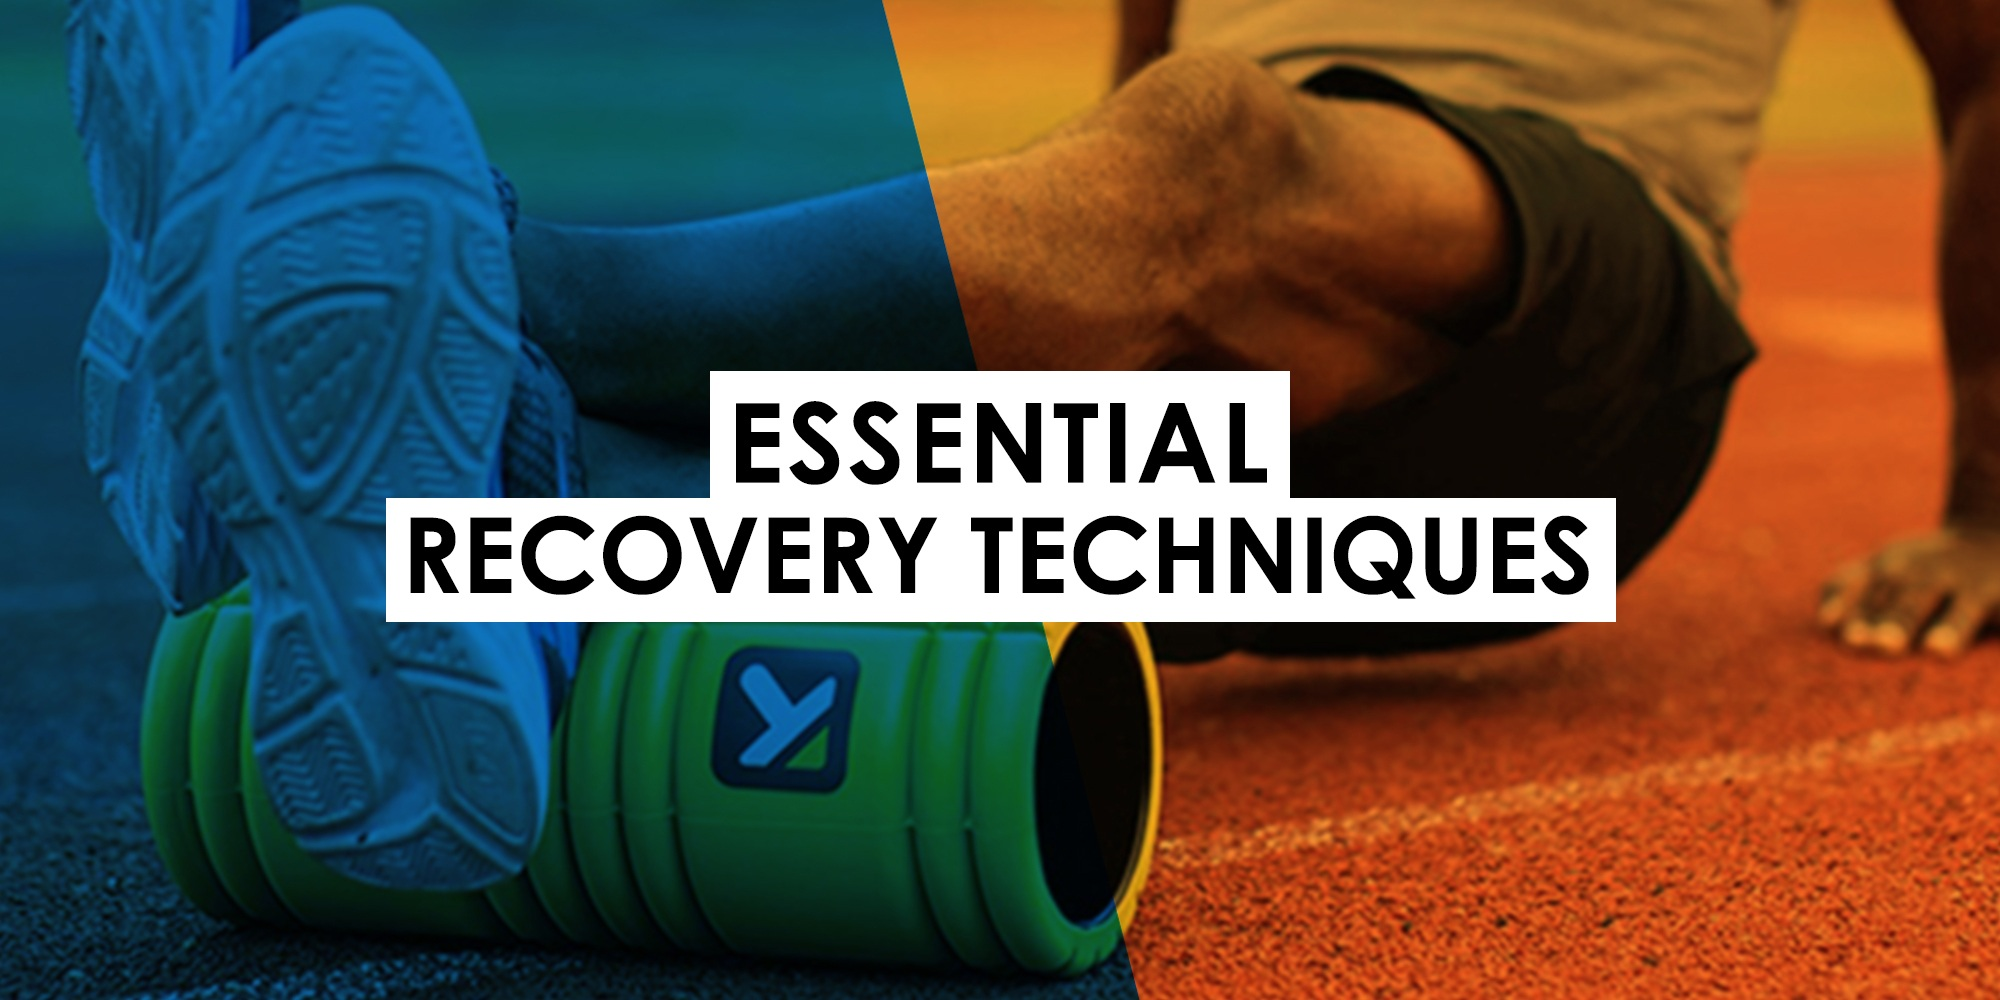 Essential Recovery Techniques